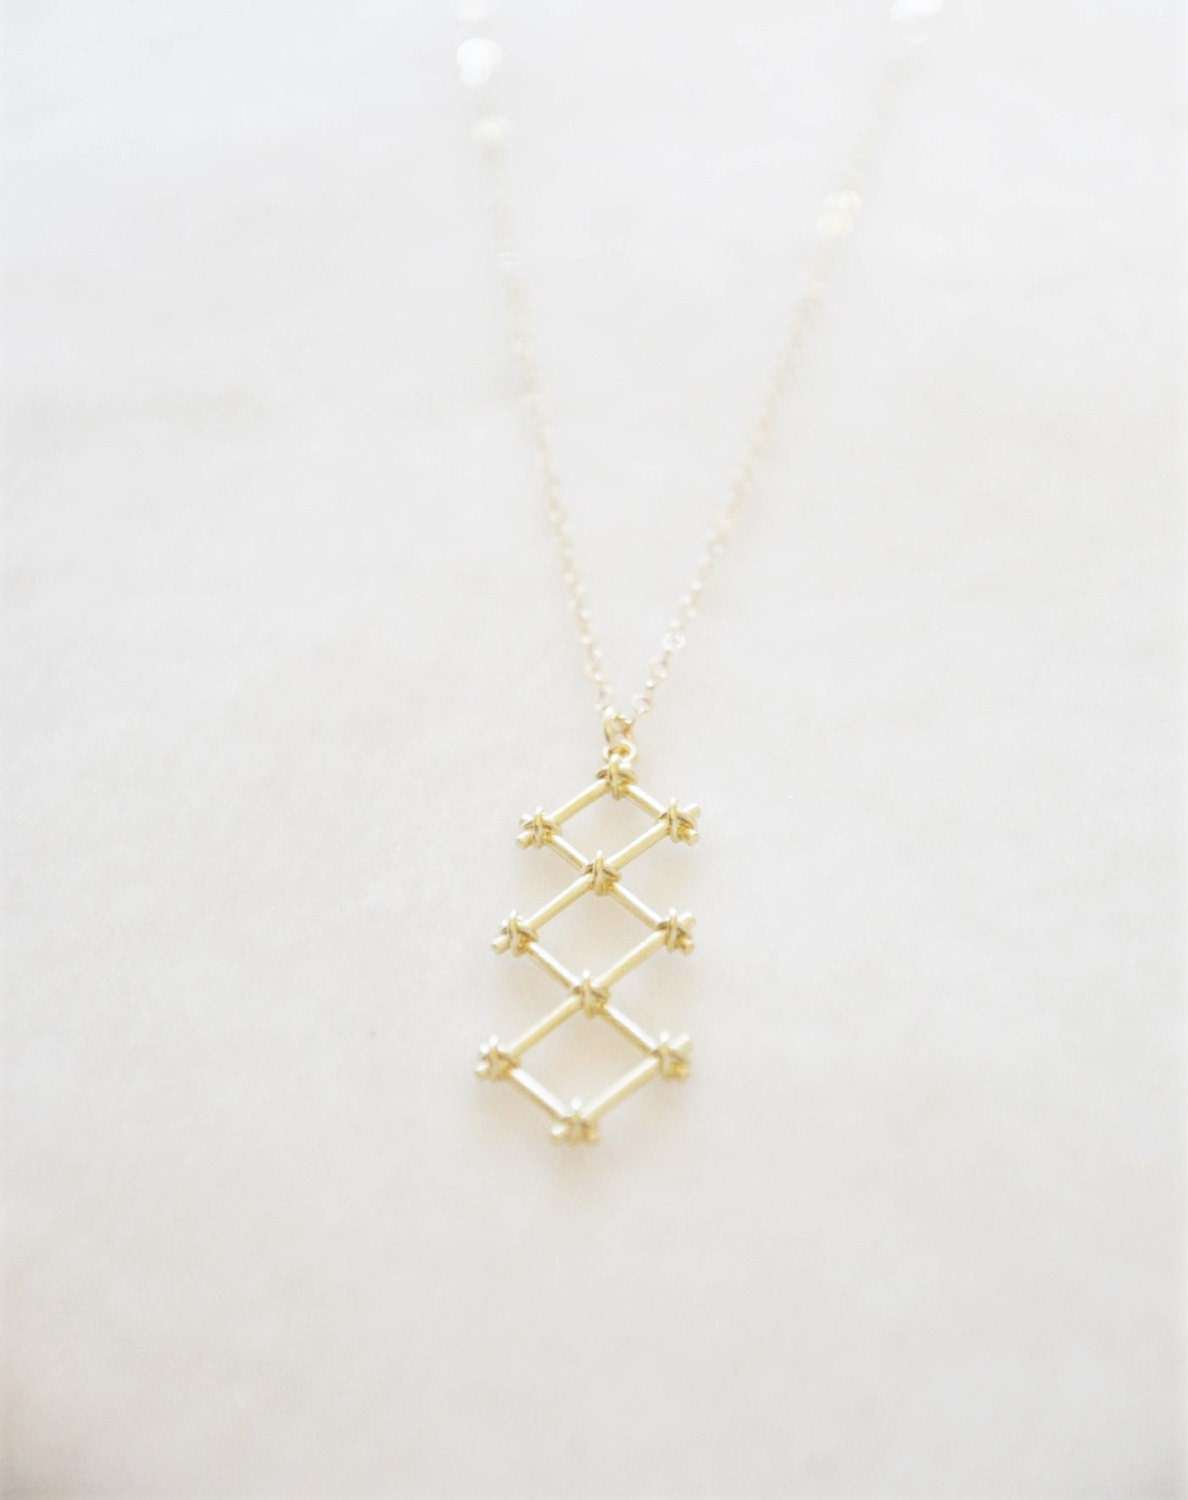 Gold Trellis Necklace/ Modern Necklace/ Geometric Necklace/ Minimal Necklace/ Layering Necklace/ Simple Necklace/ Dainty Gold Necklace